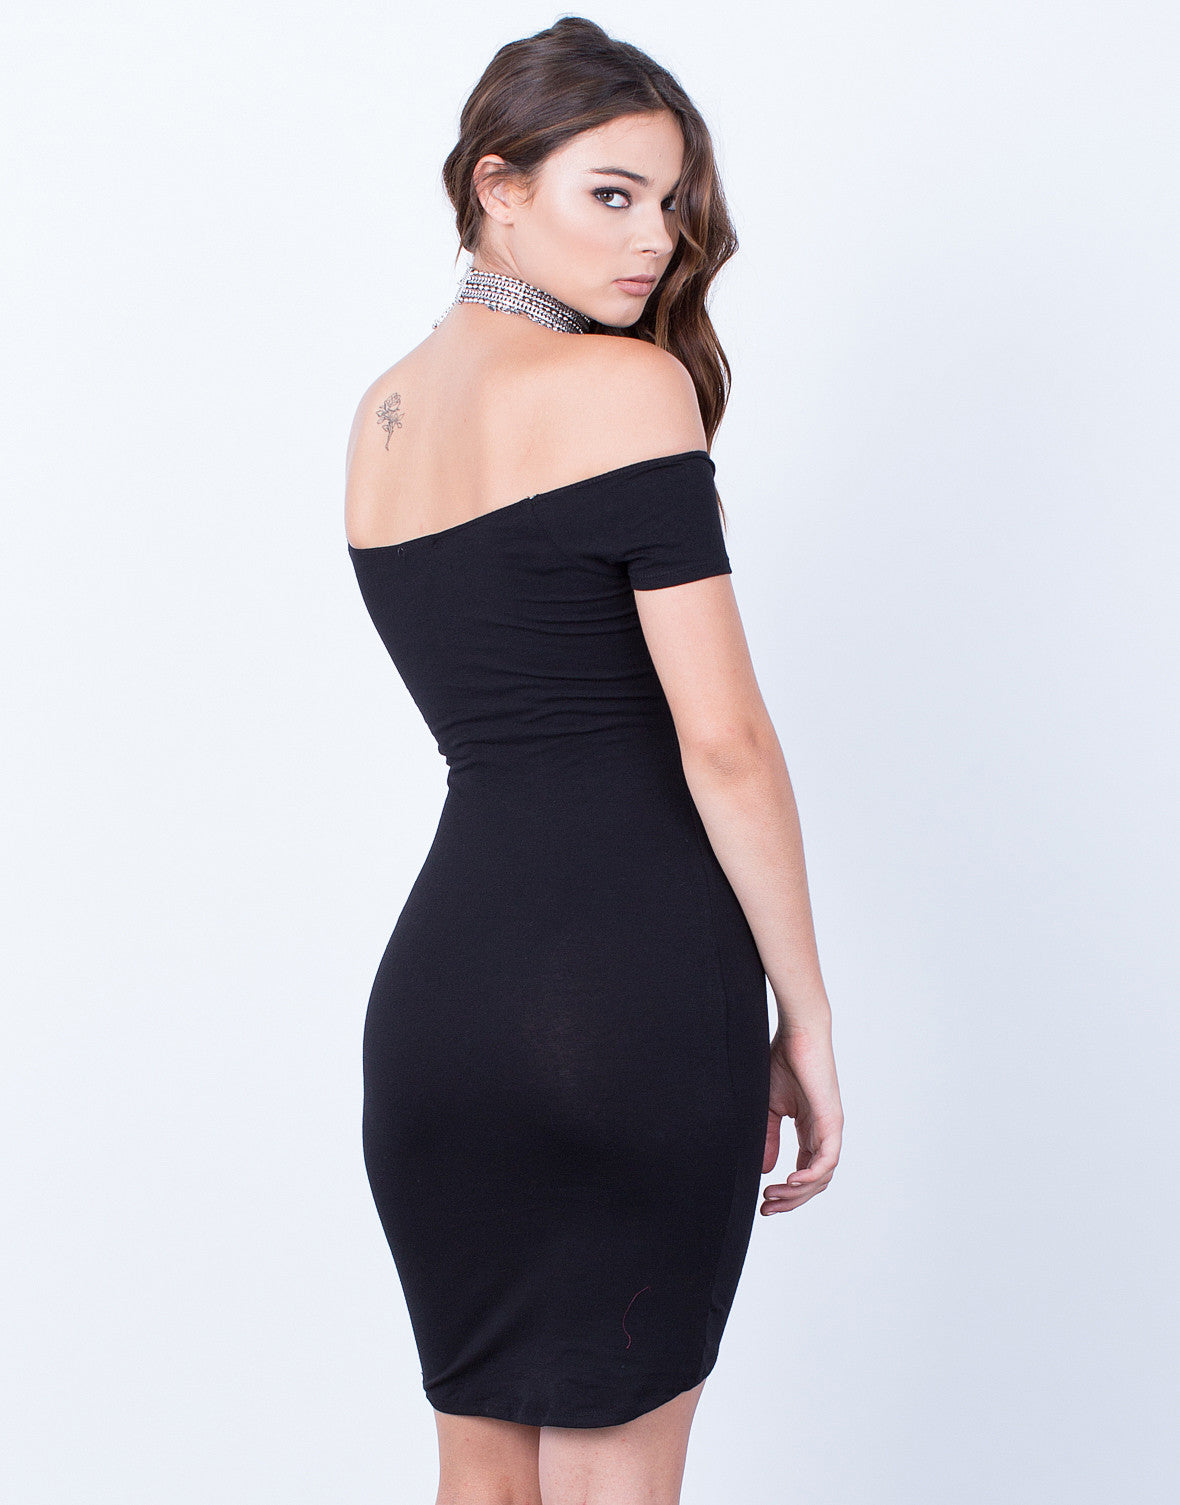 Back View of Strut Your Stuff Bodycon Dress